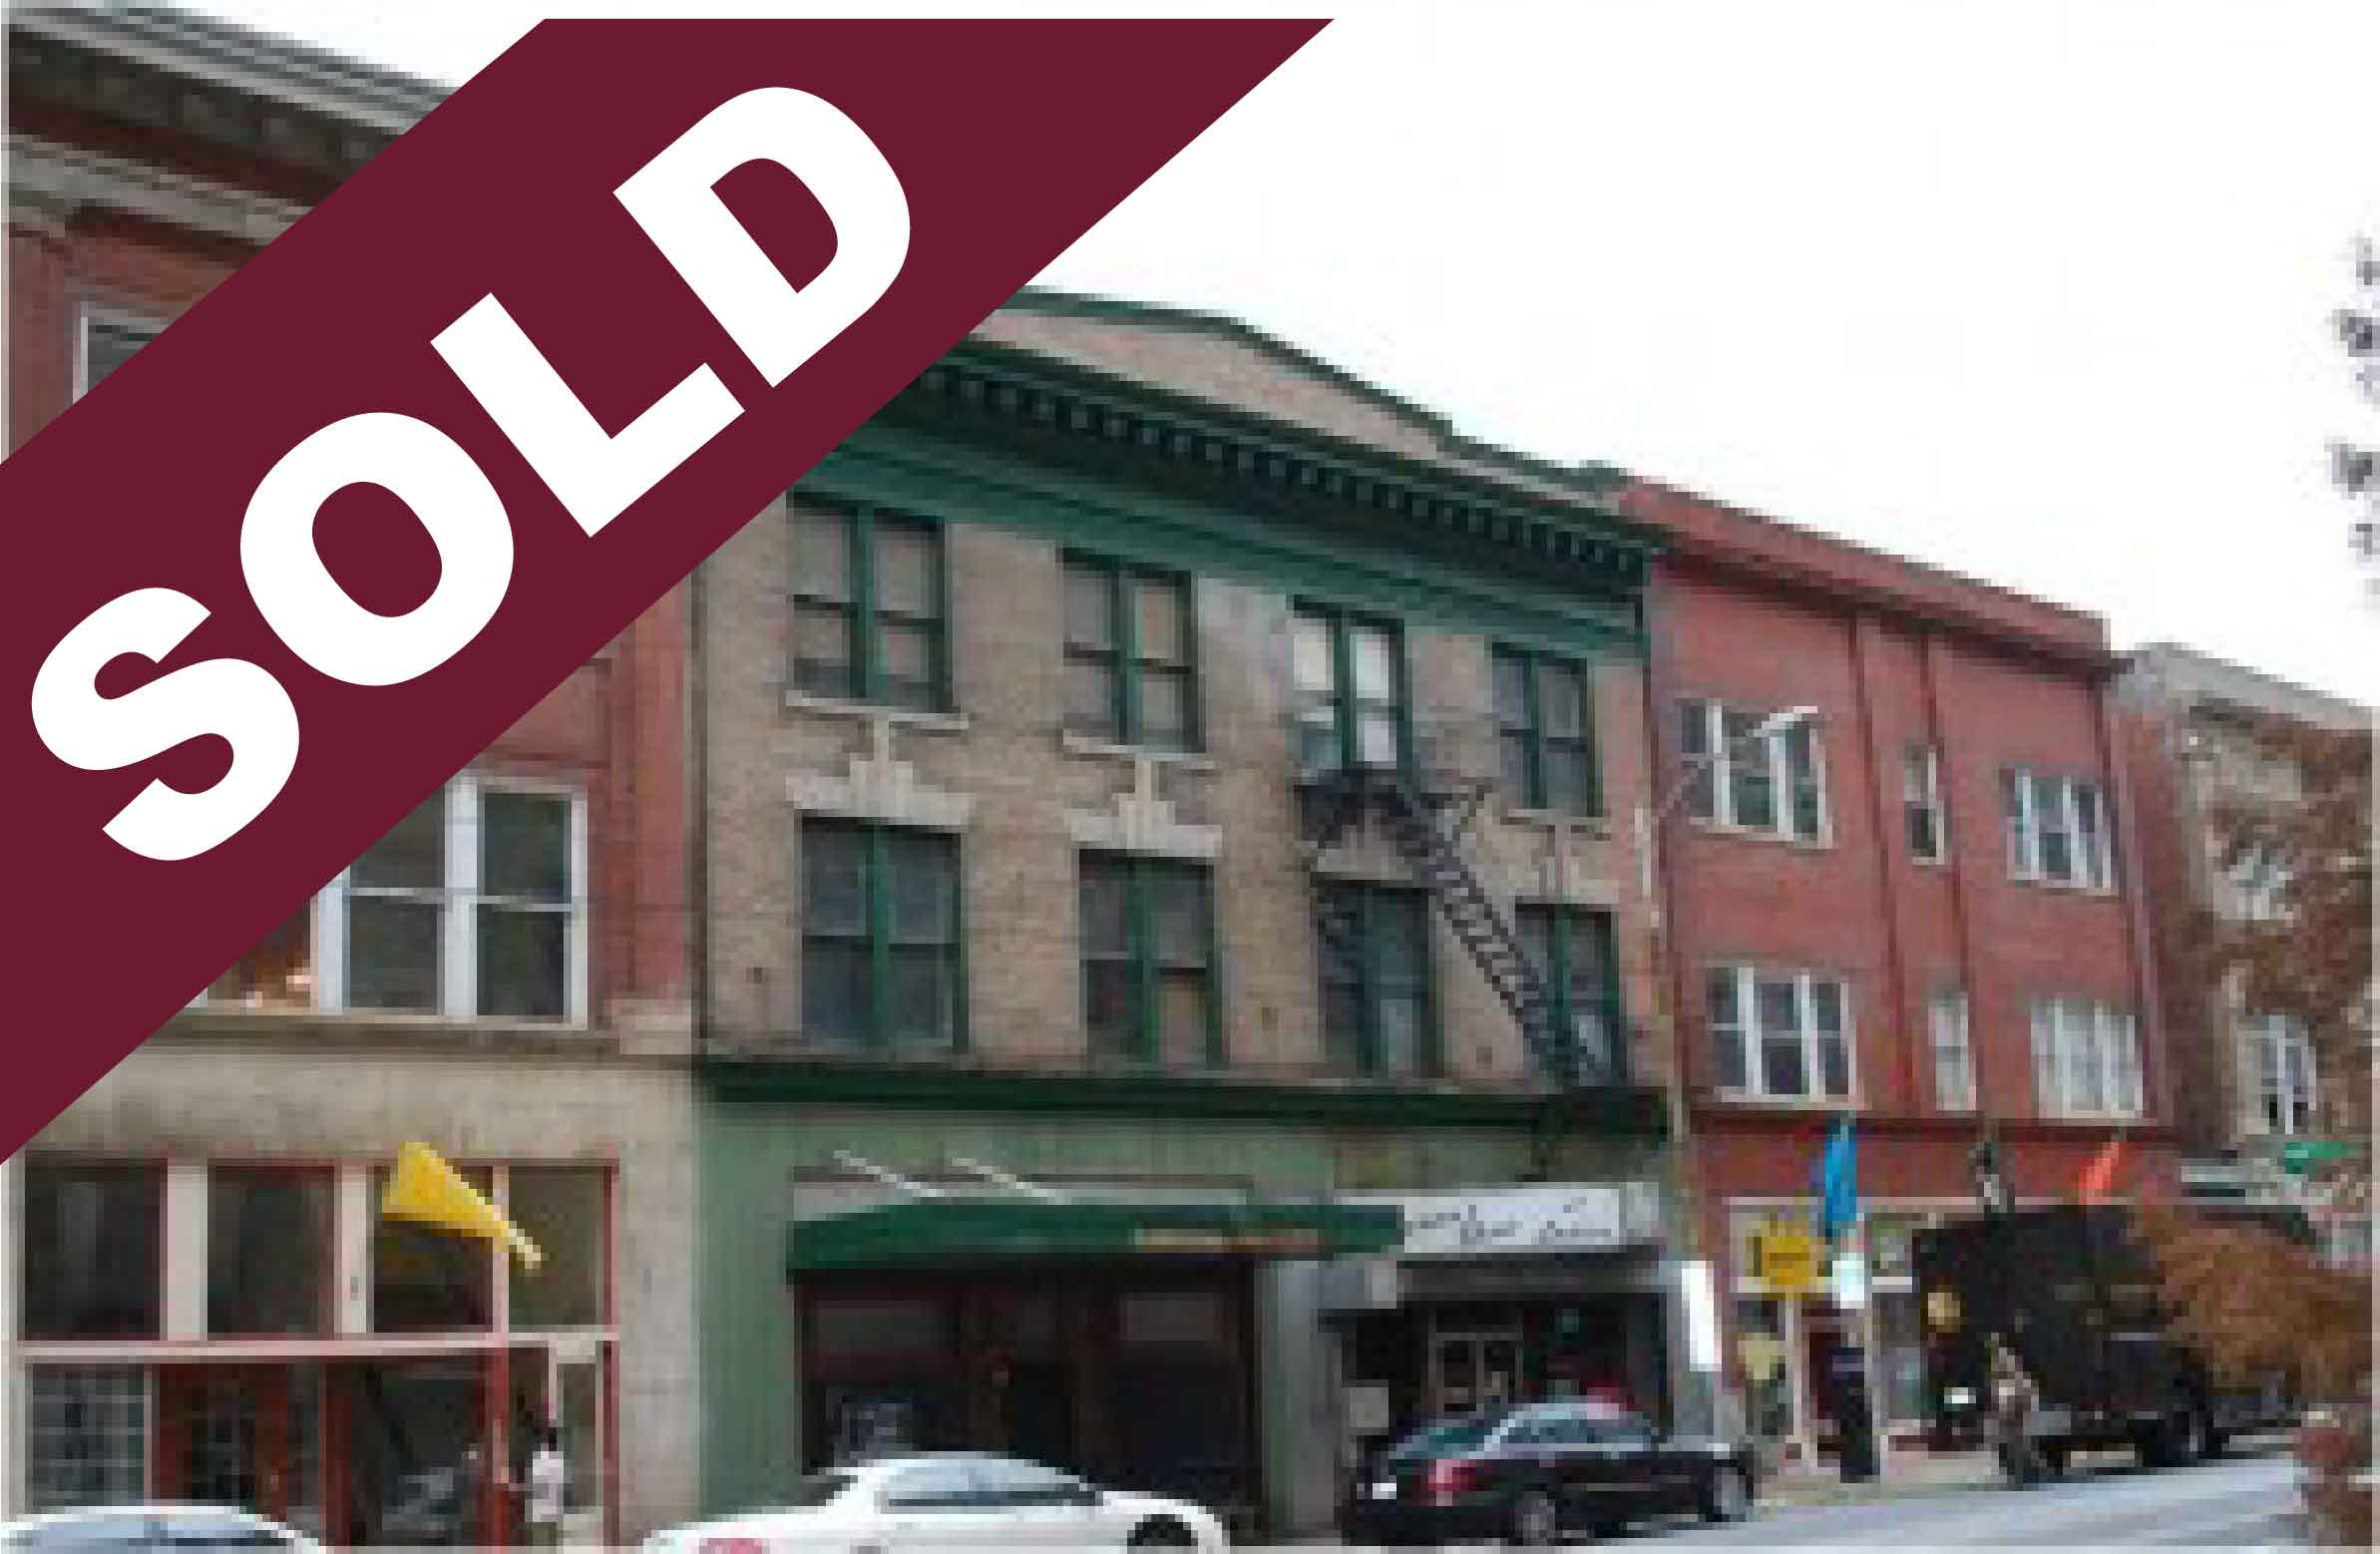 SOLD: The Scoville Hotel- 223 Mitchell Street